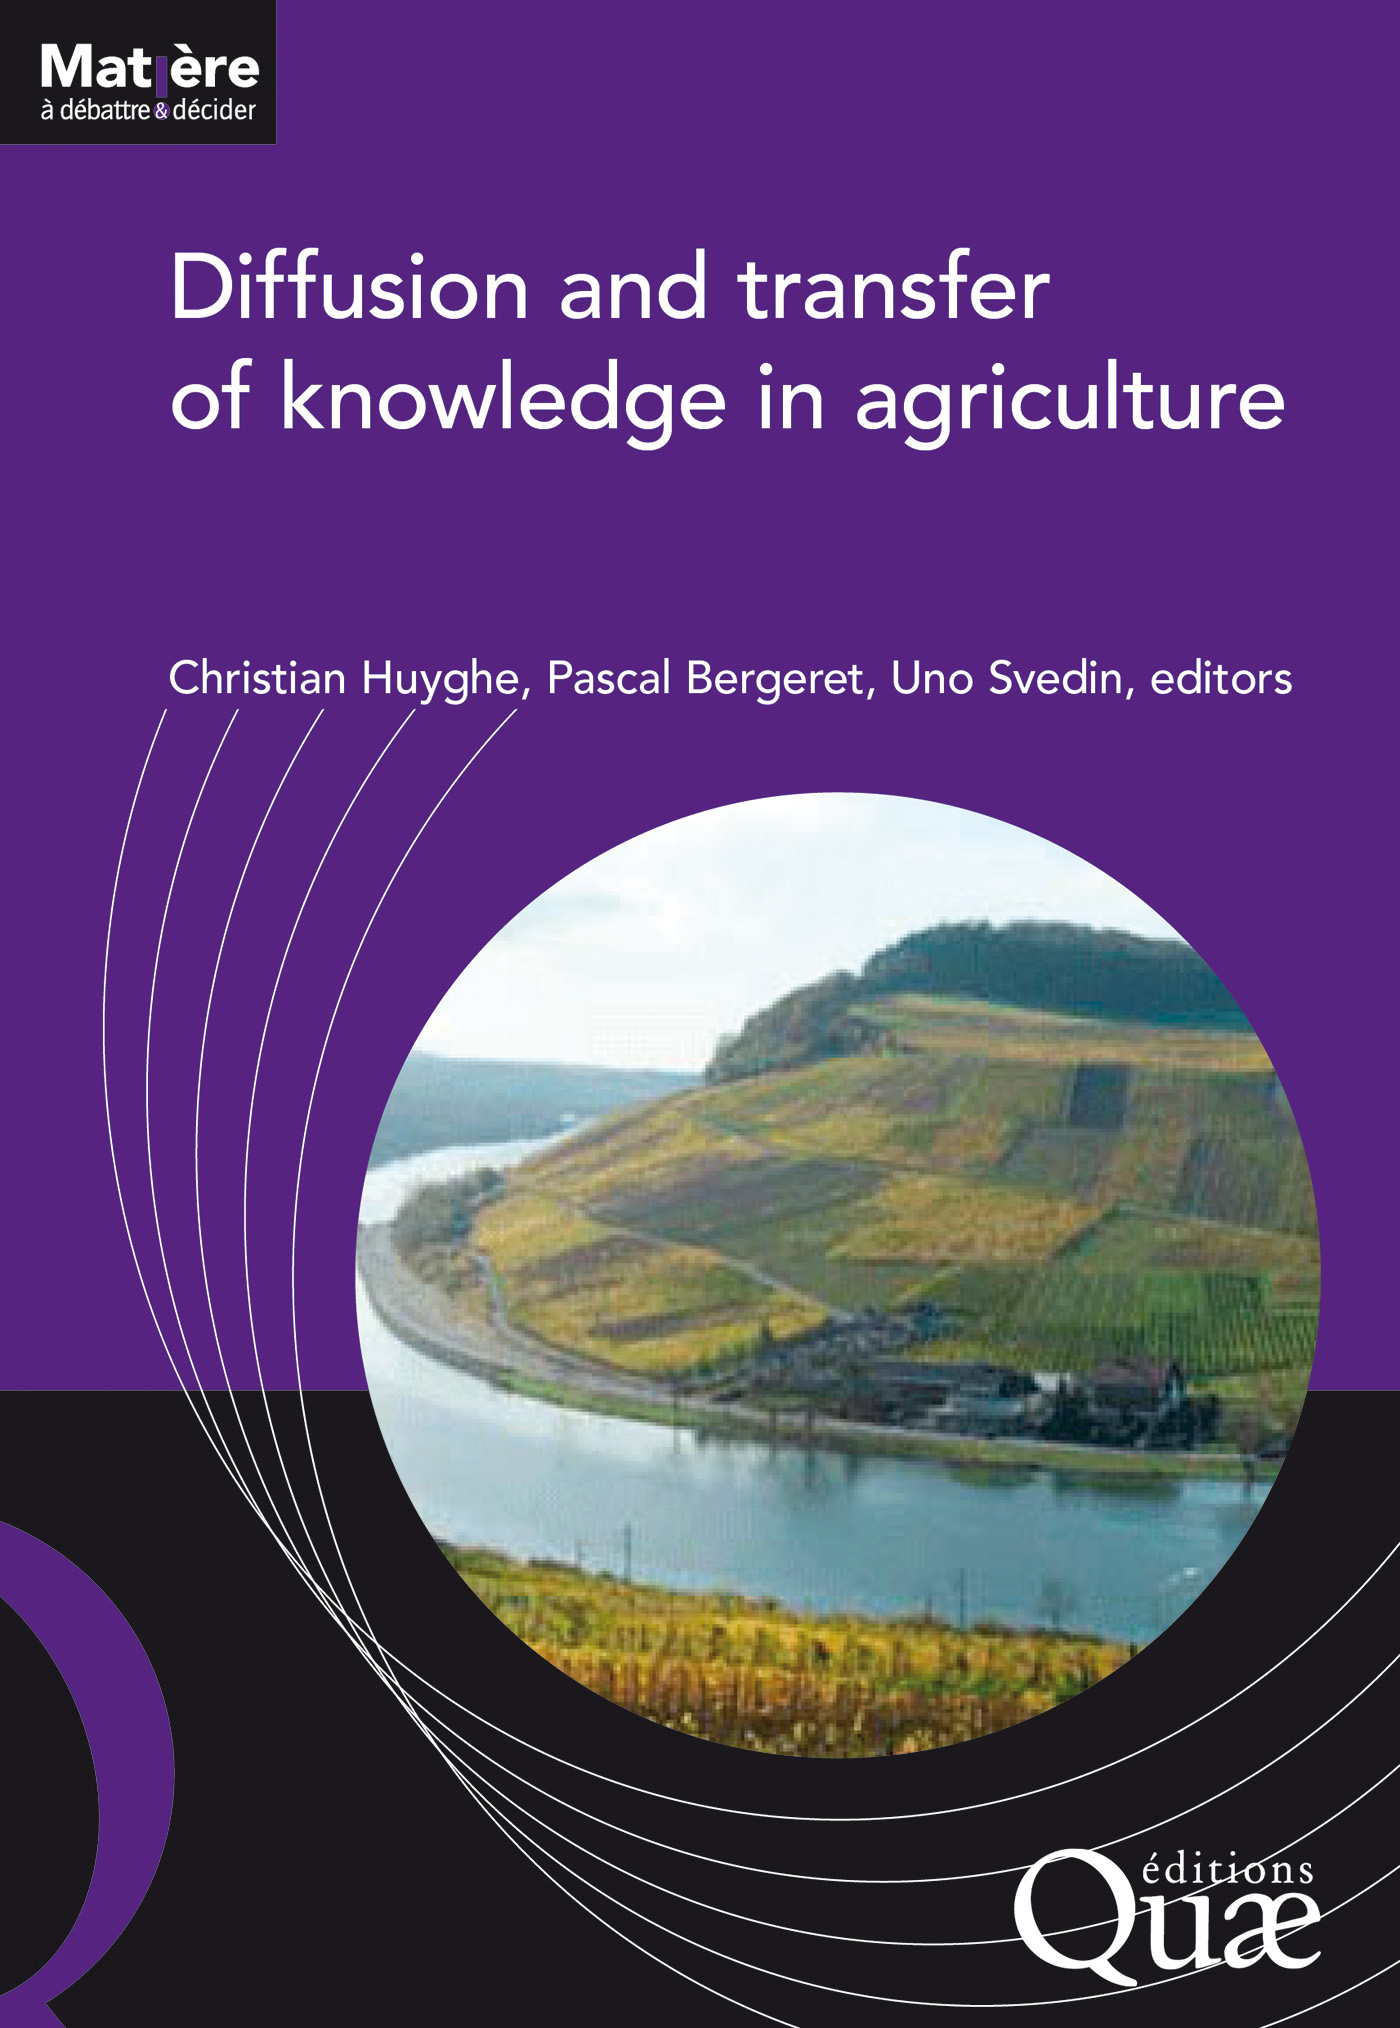 Diffusion and transfer of knowledge in agriculture De Pascal Bergeret, Christian Huyghe et Uno Svedin - Quæ